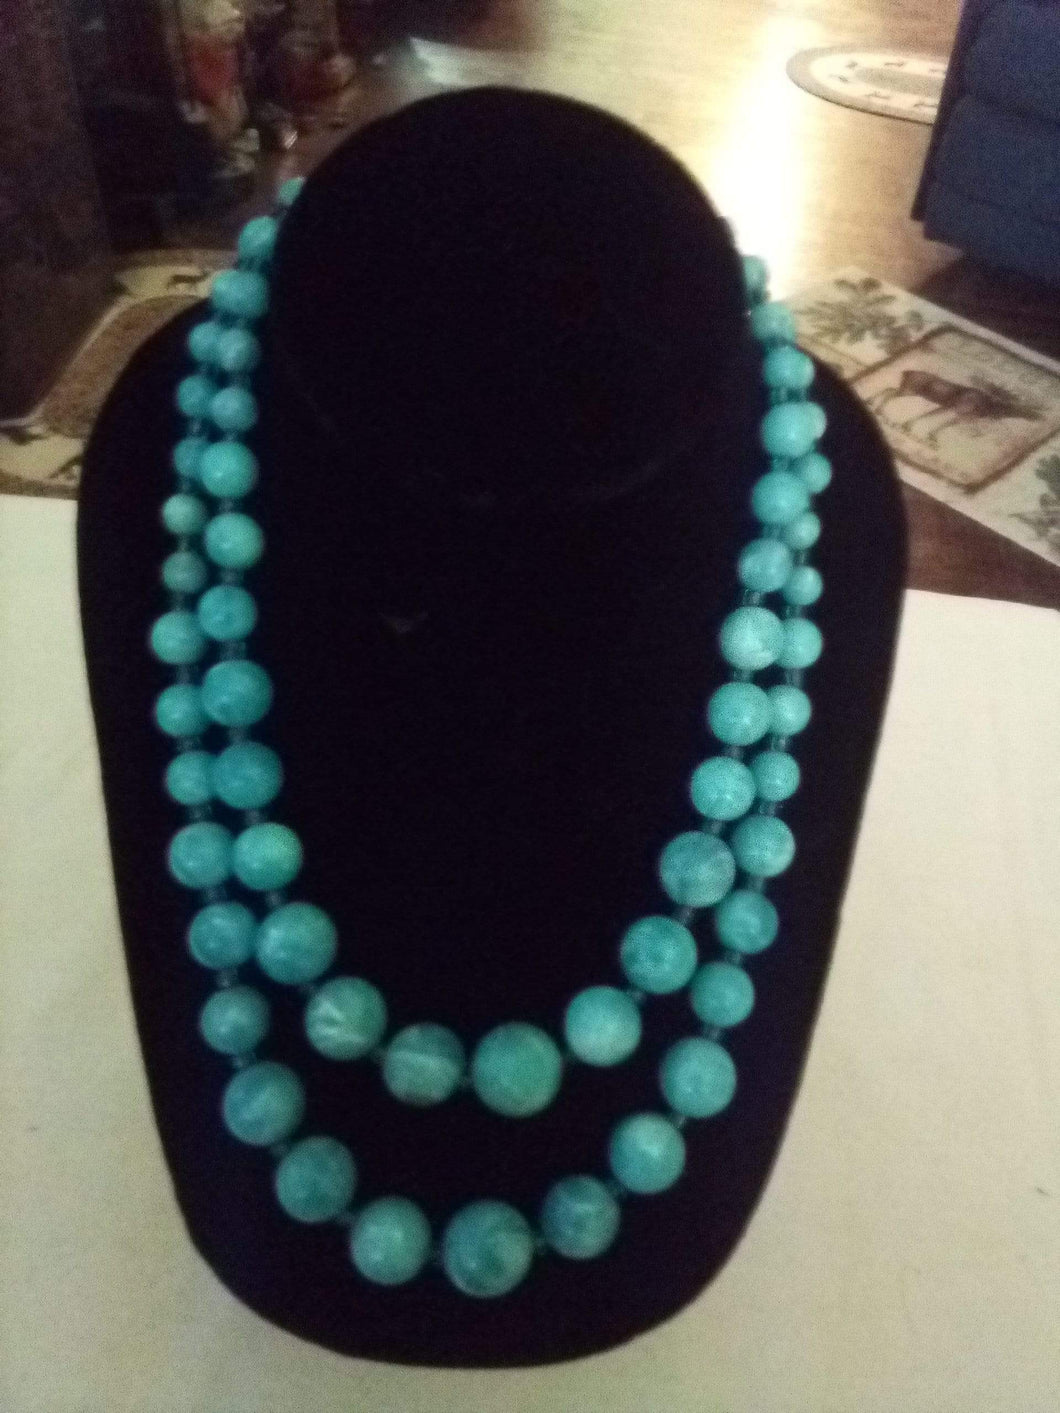 Dressy Light blue 2 tier necklace - B&P'sringsnthings